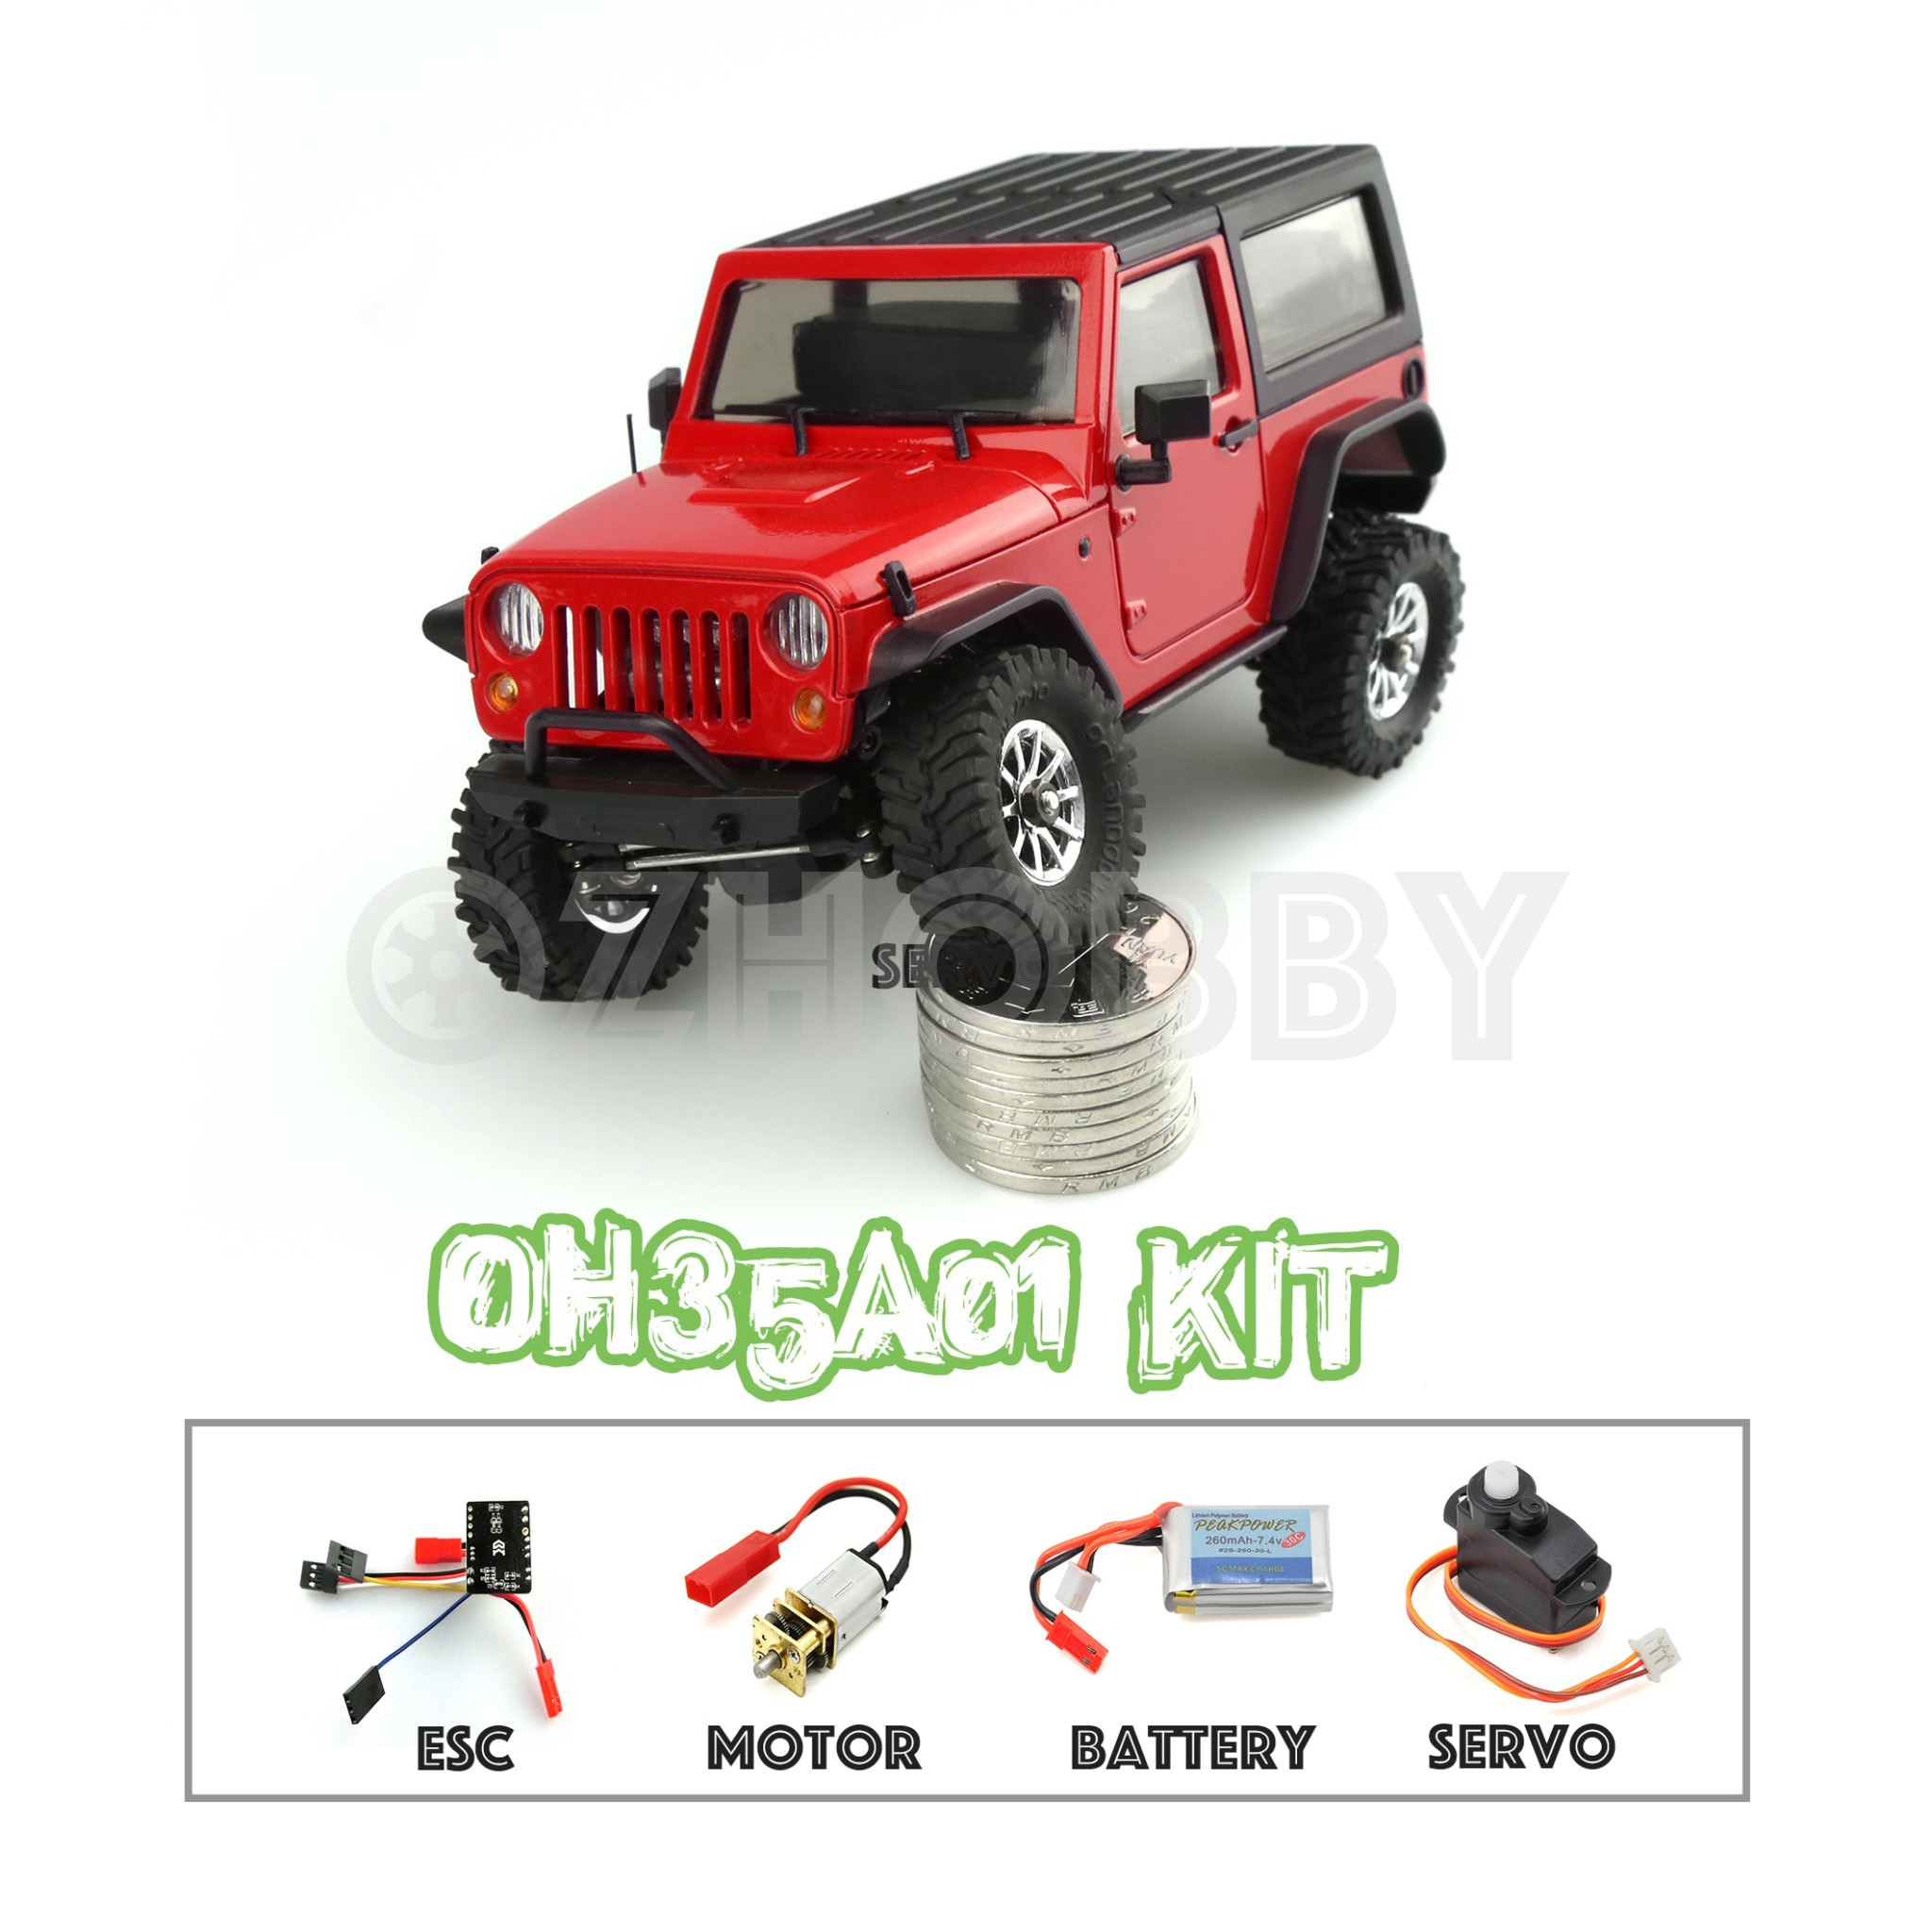 Electronic Kits For Assembly : Orlandoo hunter rc crawler assembly kit oh a